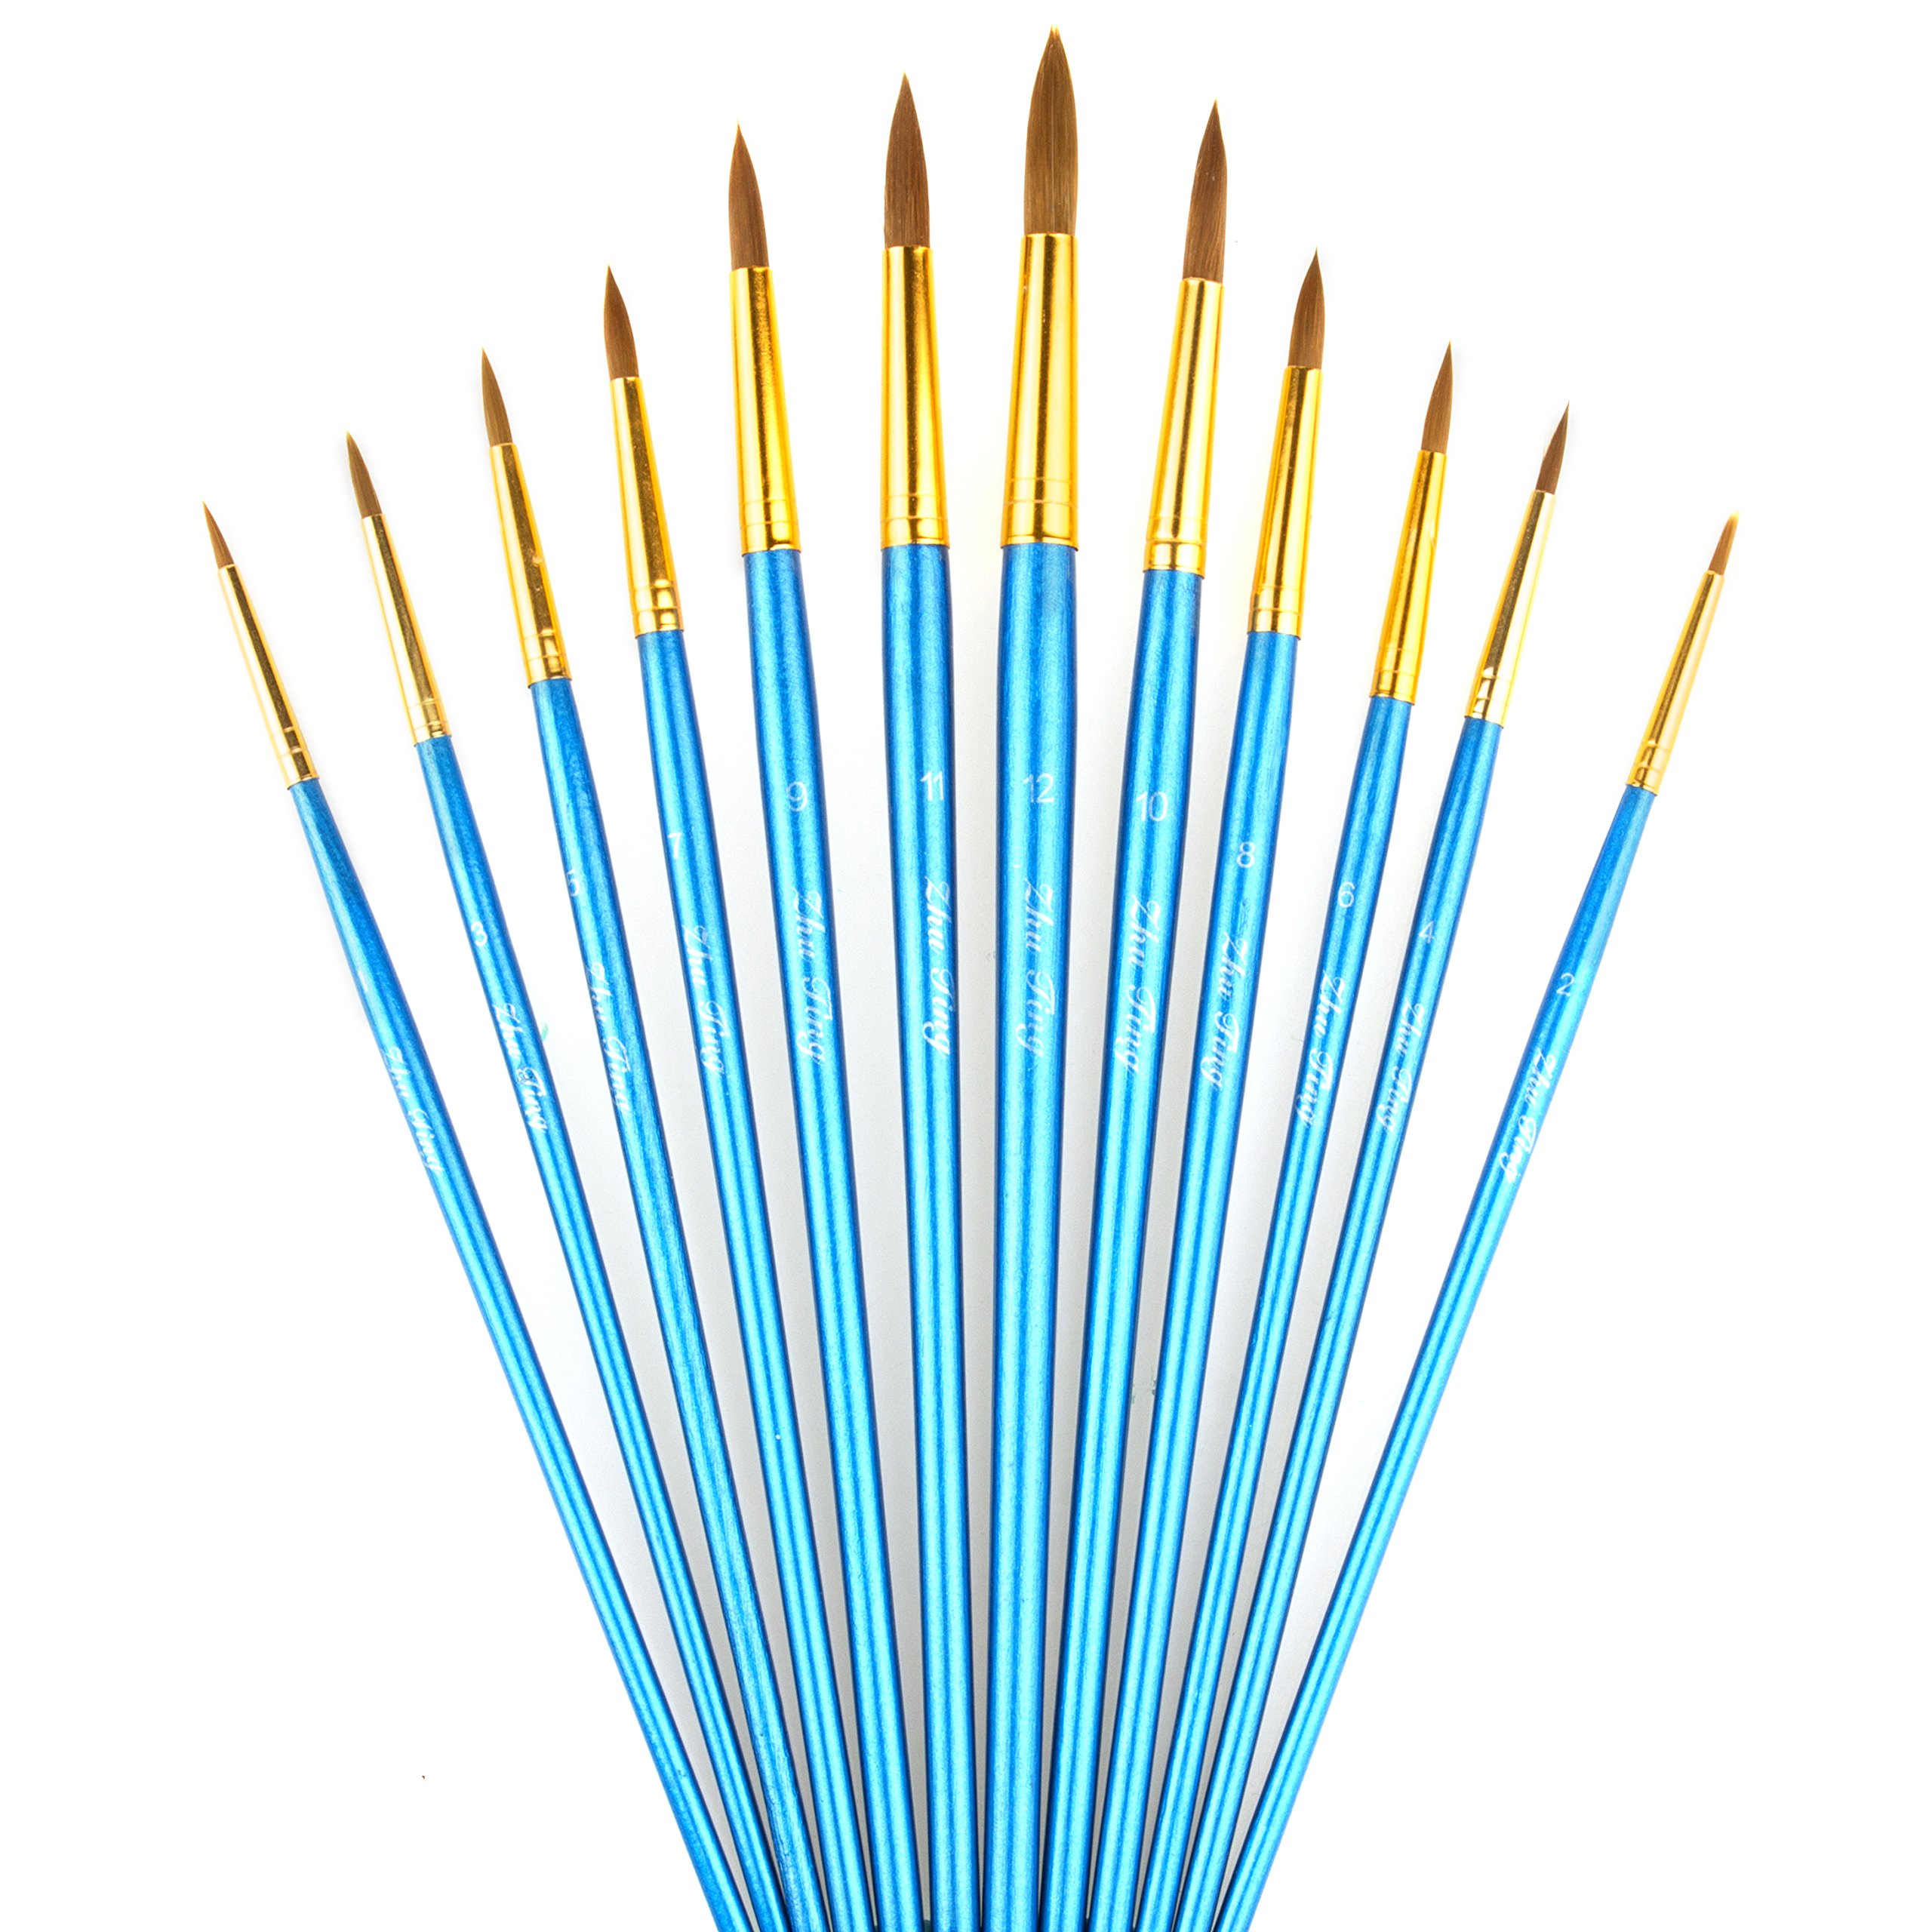 StarVast Painting Brushes, 12pcs Professional Round Pointed Paint Brush Set for Watercolor/Oil/Acrylic/Crafts/Rock/Face Painting and Gouache - Blue